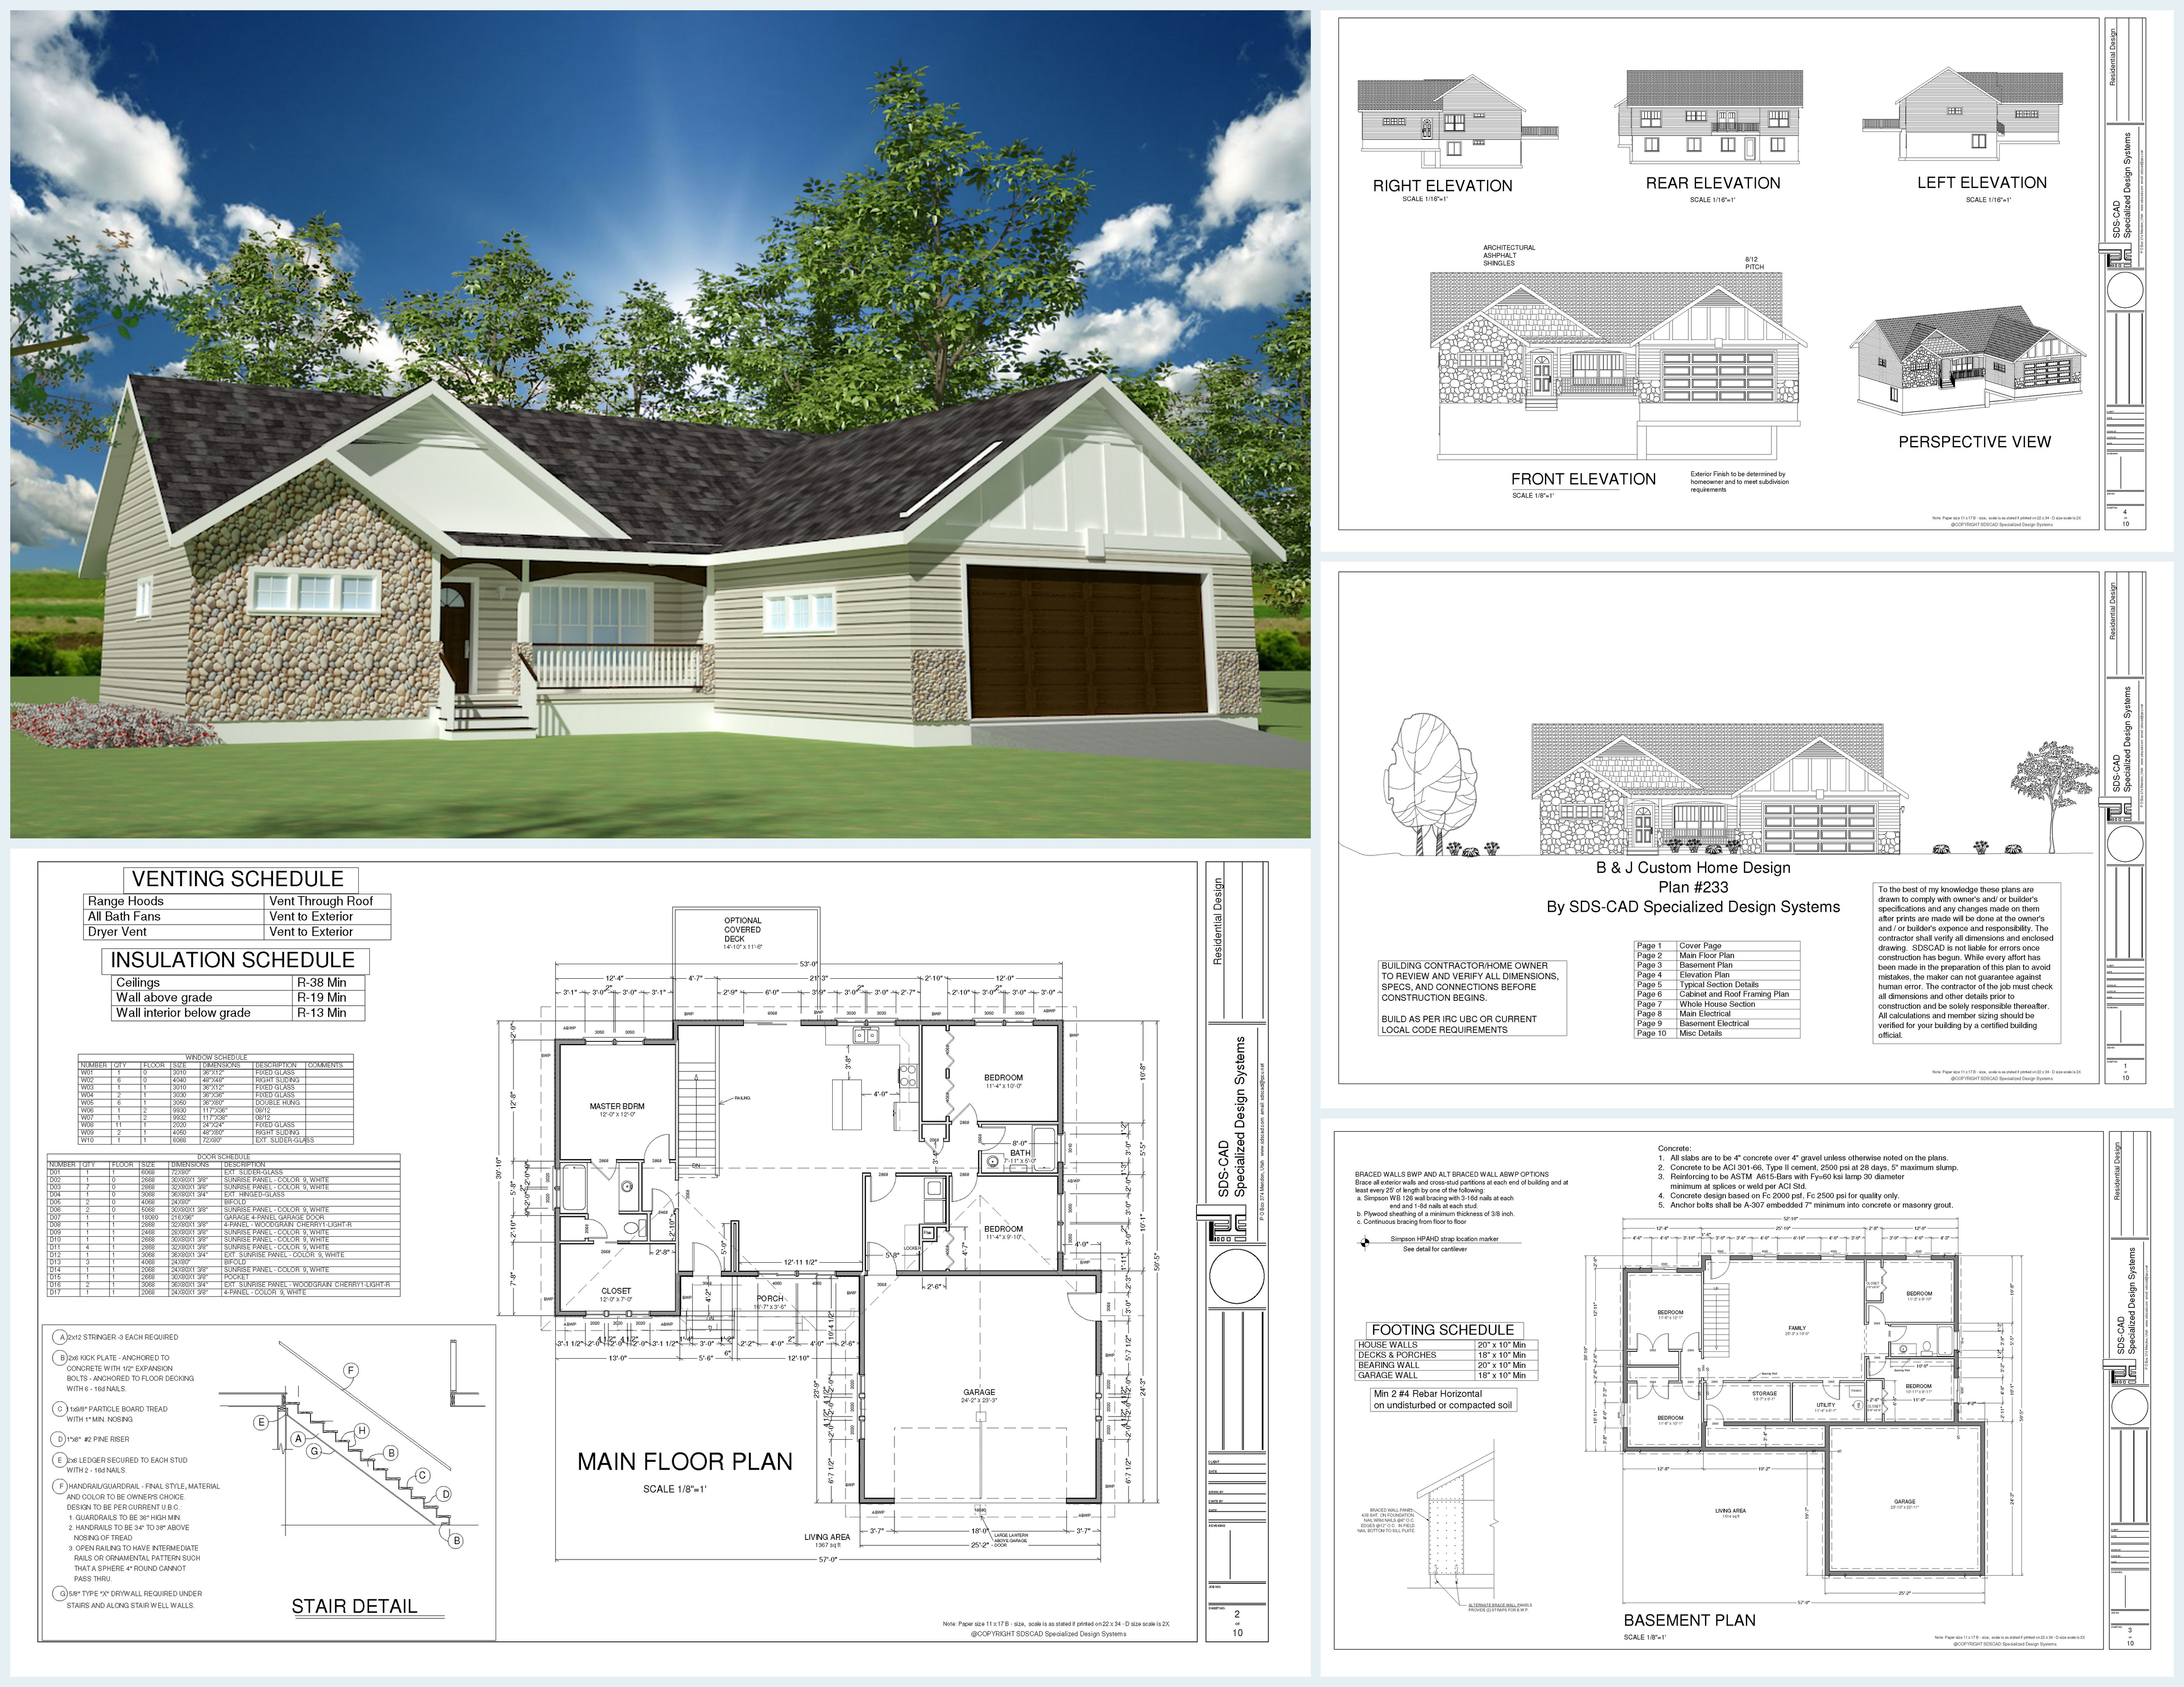 H233 1367 sq ft custom spec house plans in both pdf and dwg file sds plans House plan design online